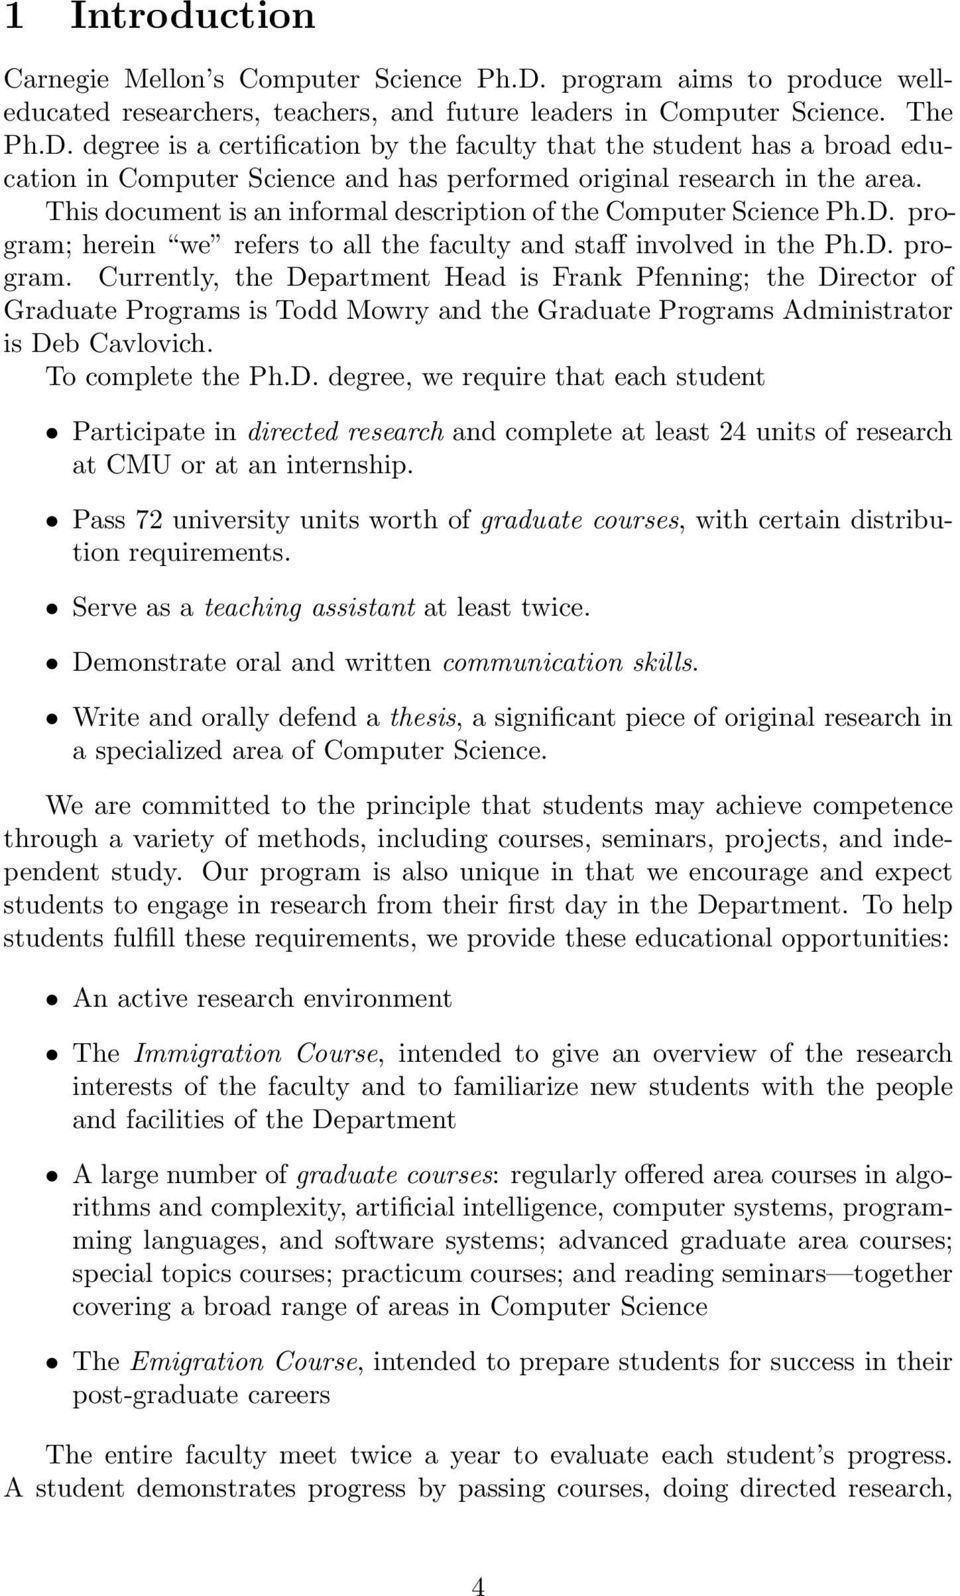 degree is a certification by the faculty that the student has a broad education in Computer Science and has performed original research in the area.